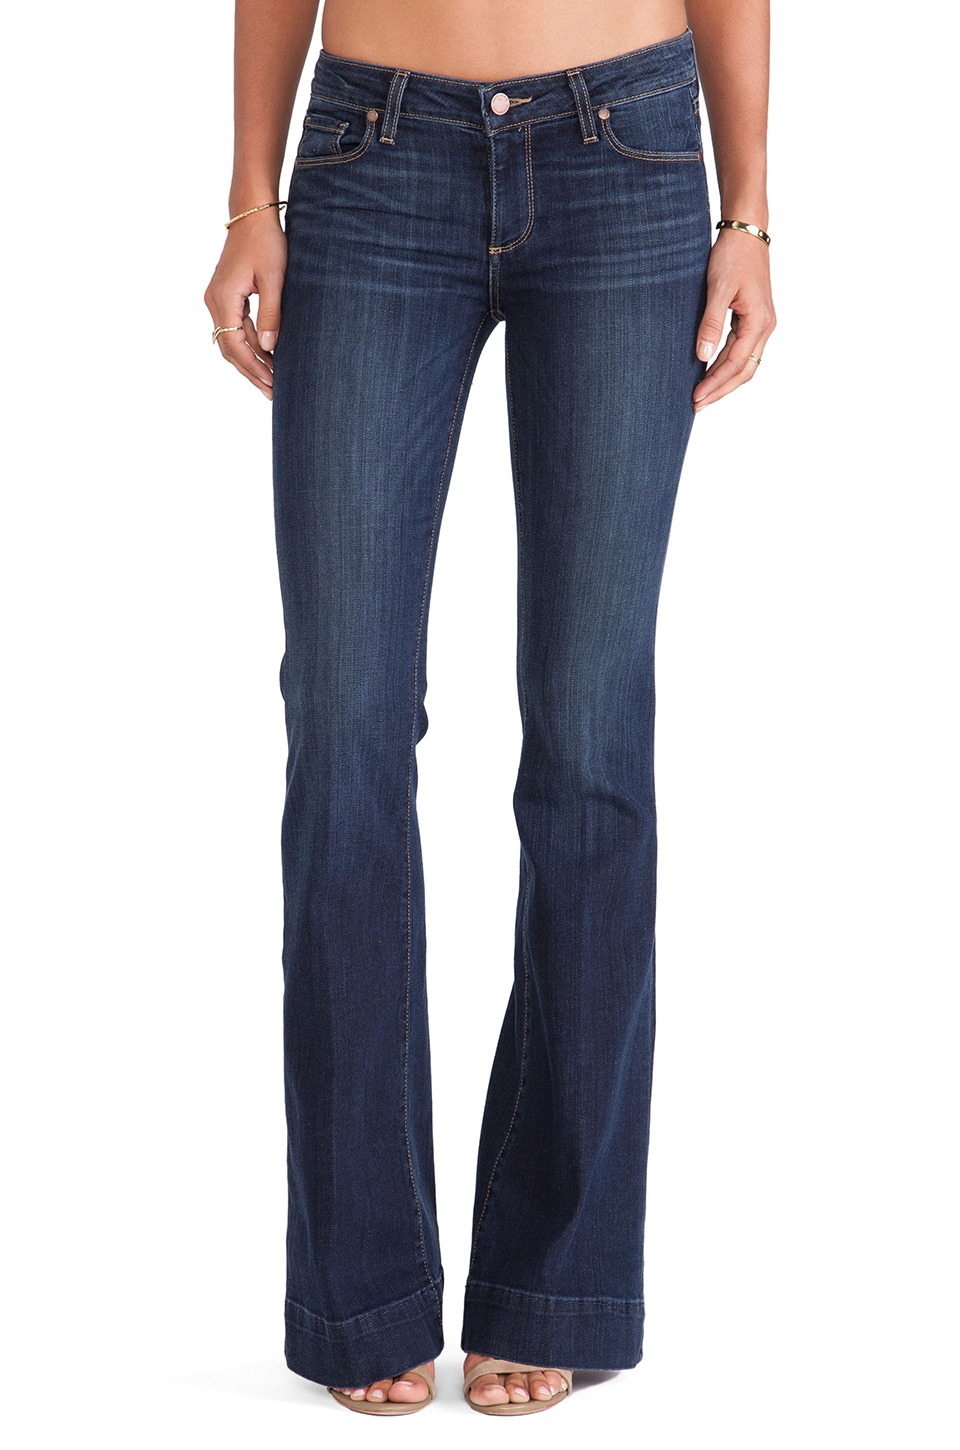 Paige Denim Fiona Flare in Verona